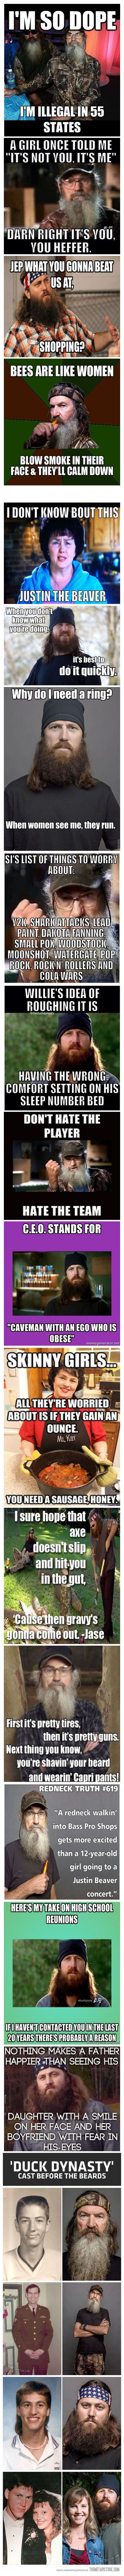 The Best of Duck Dynasty